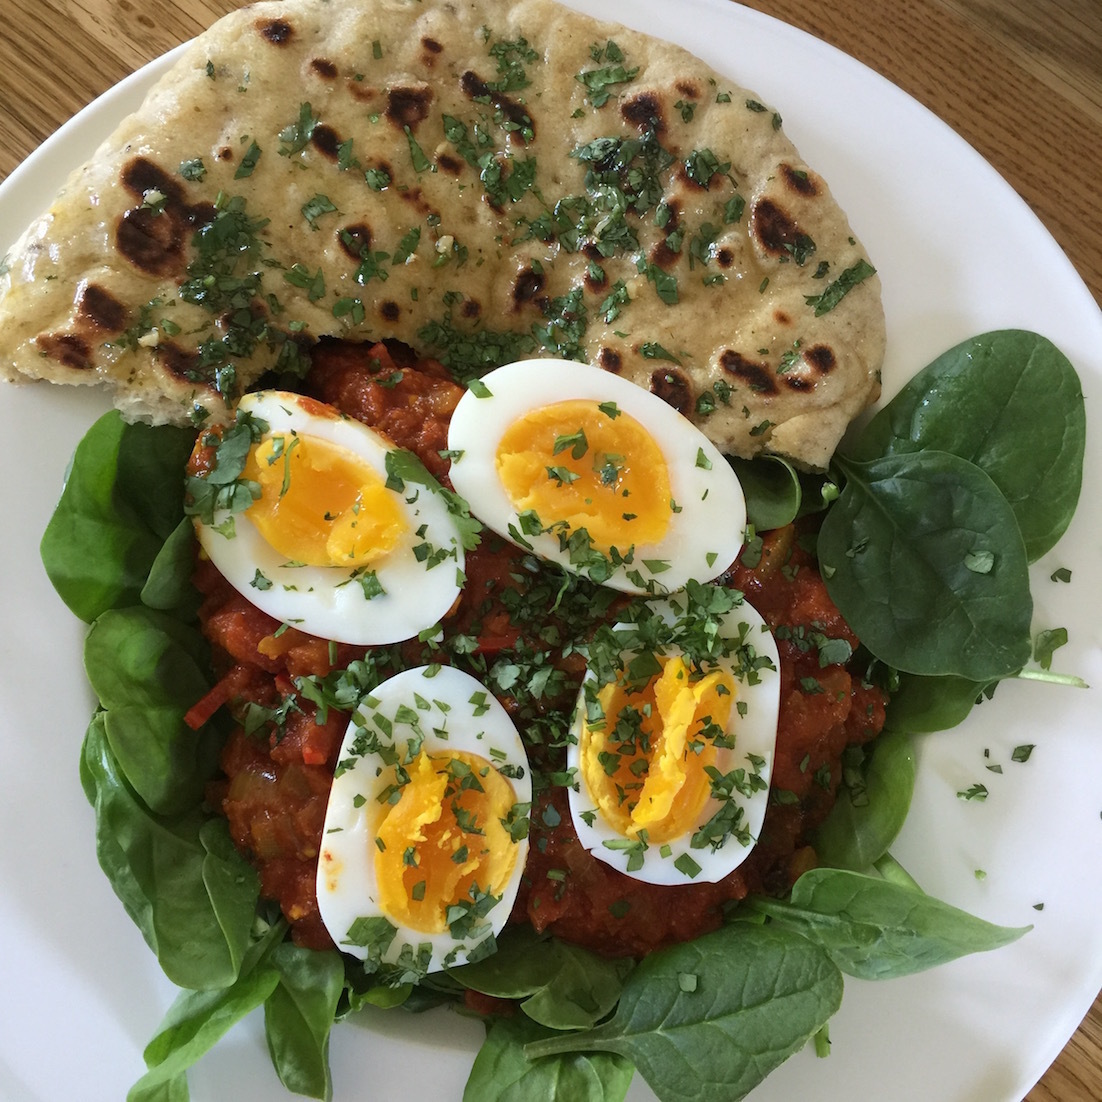 Spiced Garlic Flat Bread And Curried Eggs